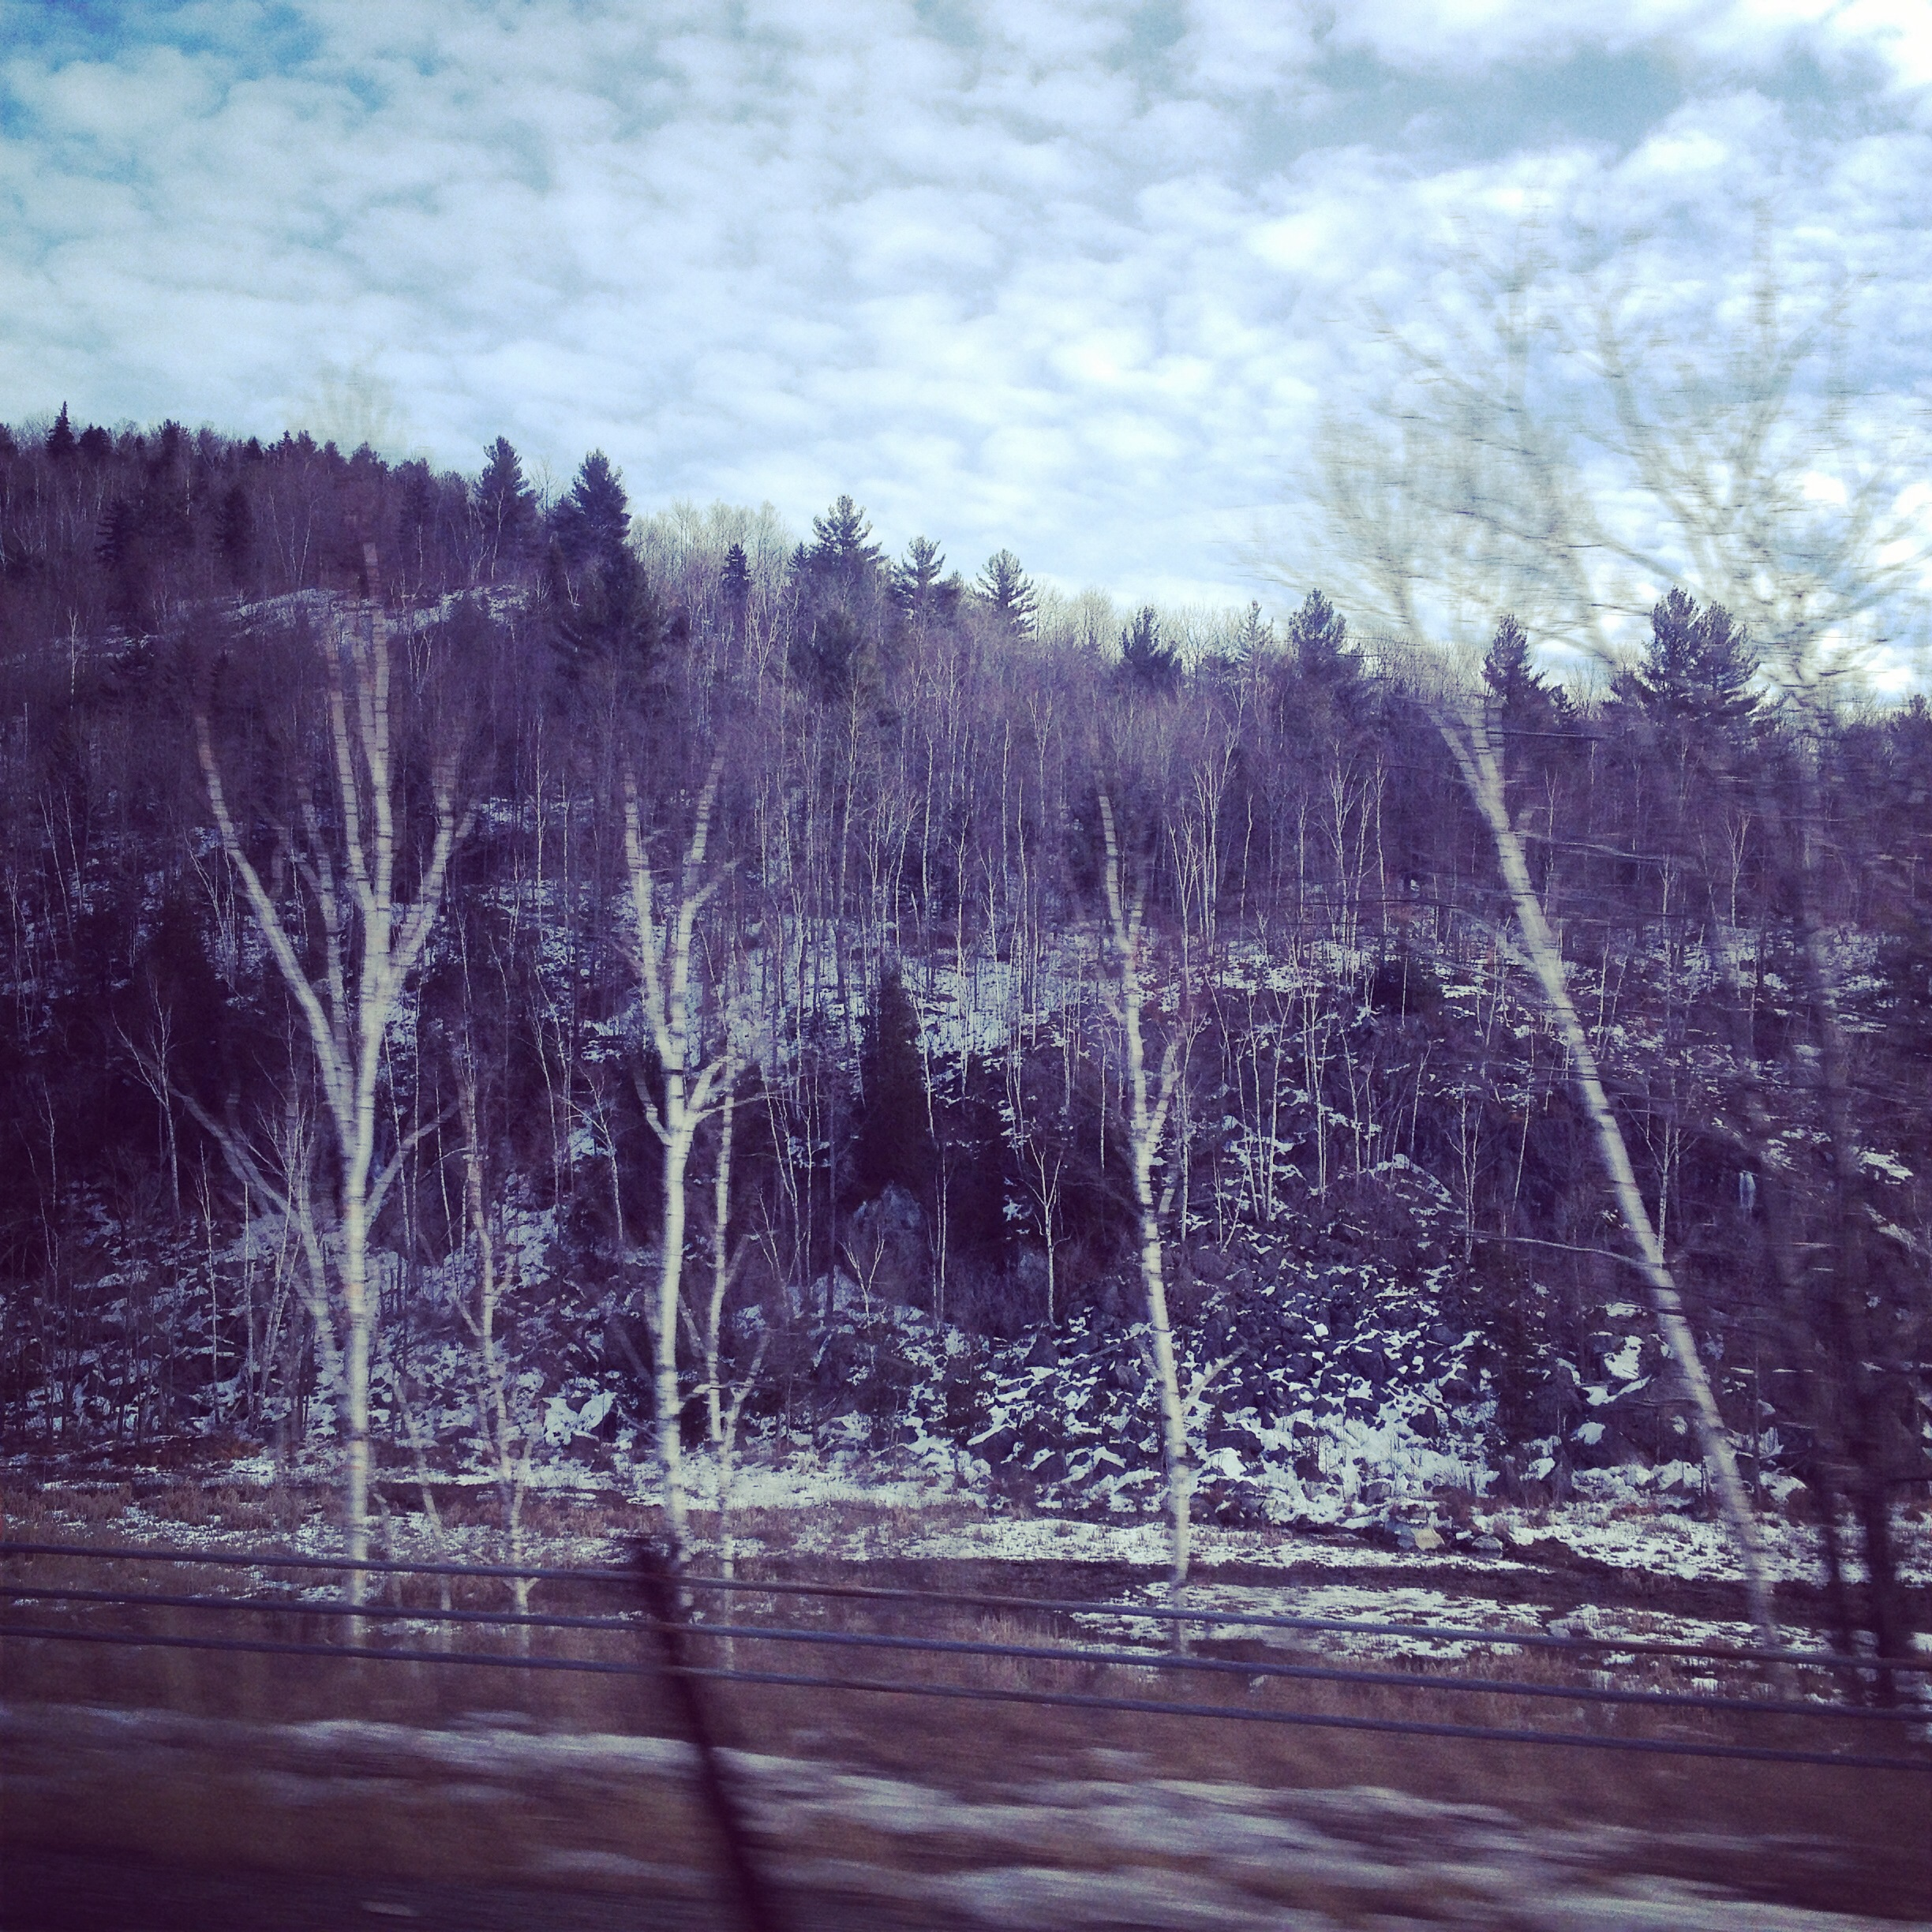 Traveling to Lake Placid, New York